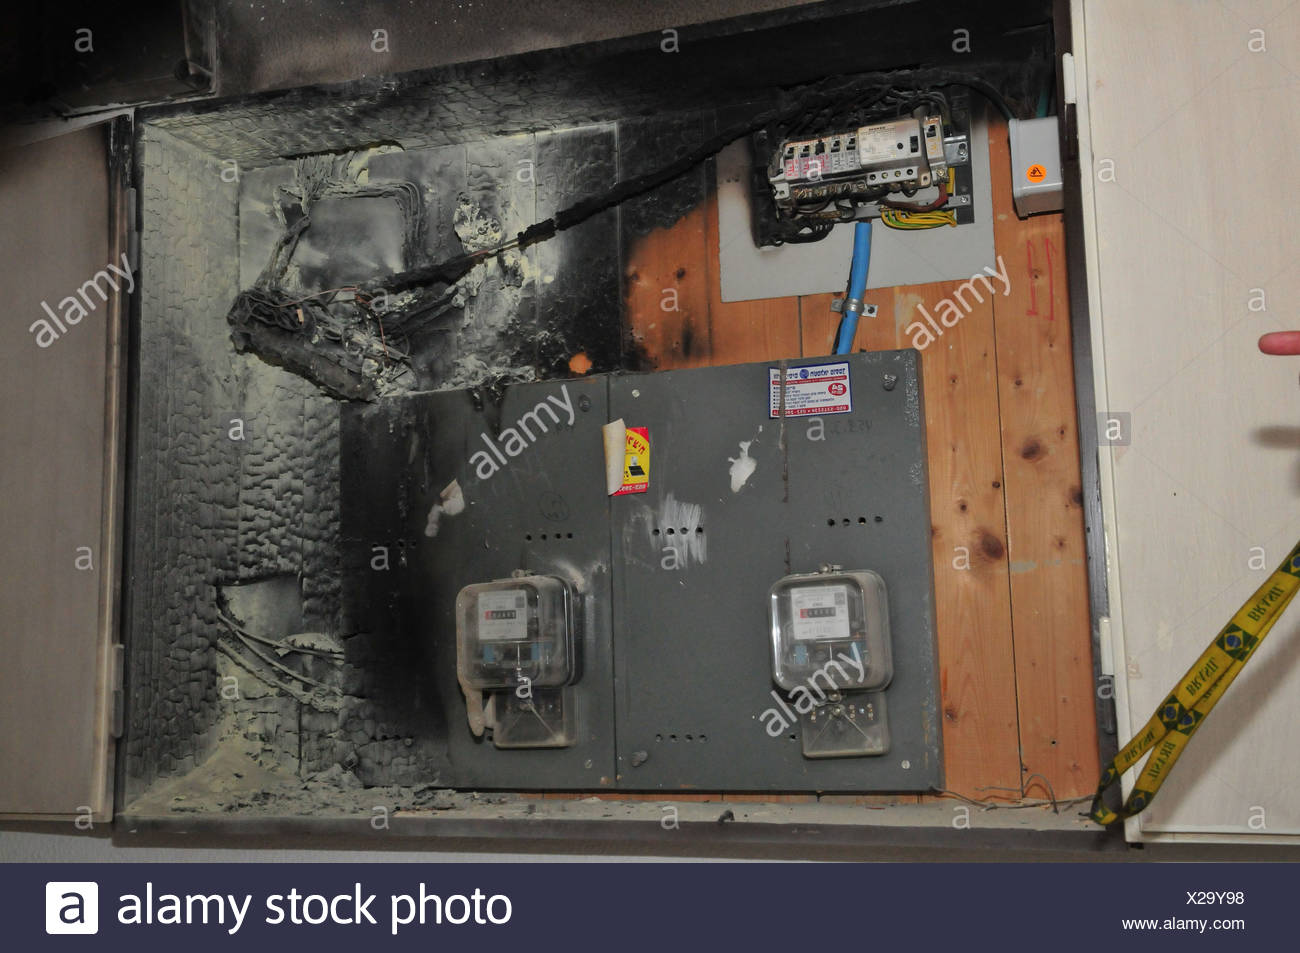 A Fire Broke Out In Household Electrical Fuse Box Flames Consumed How Can I Take The Board Burnt Photographed Israel